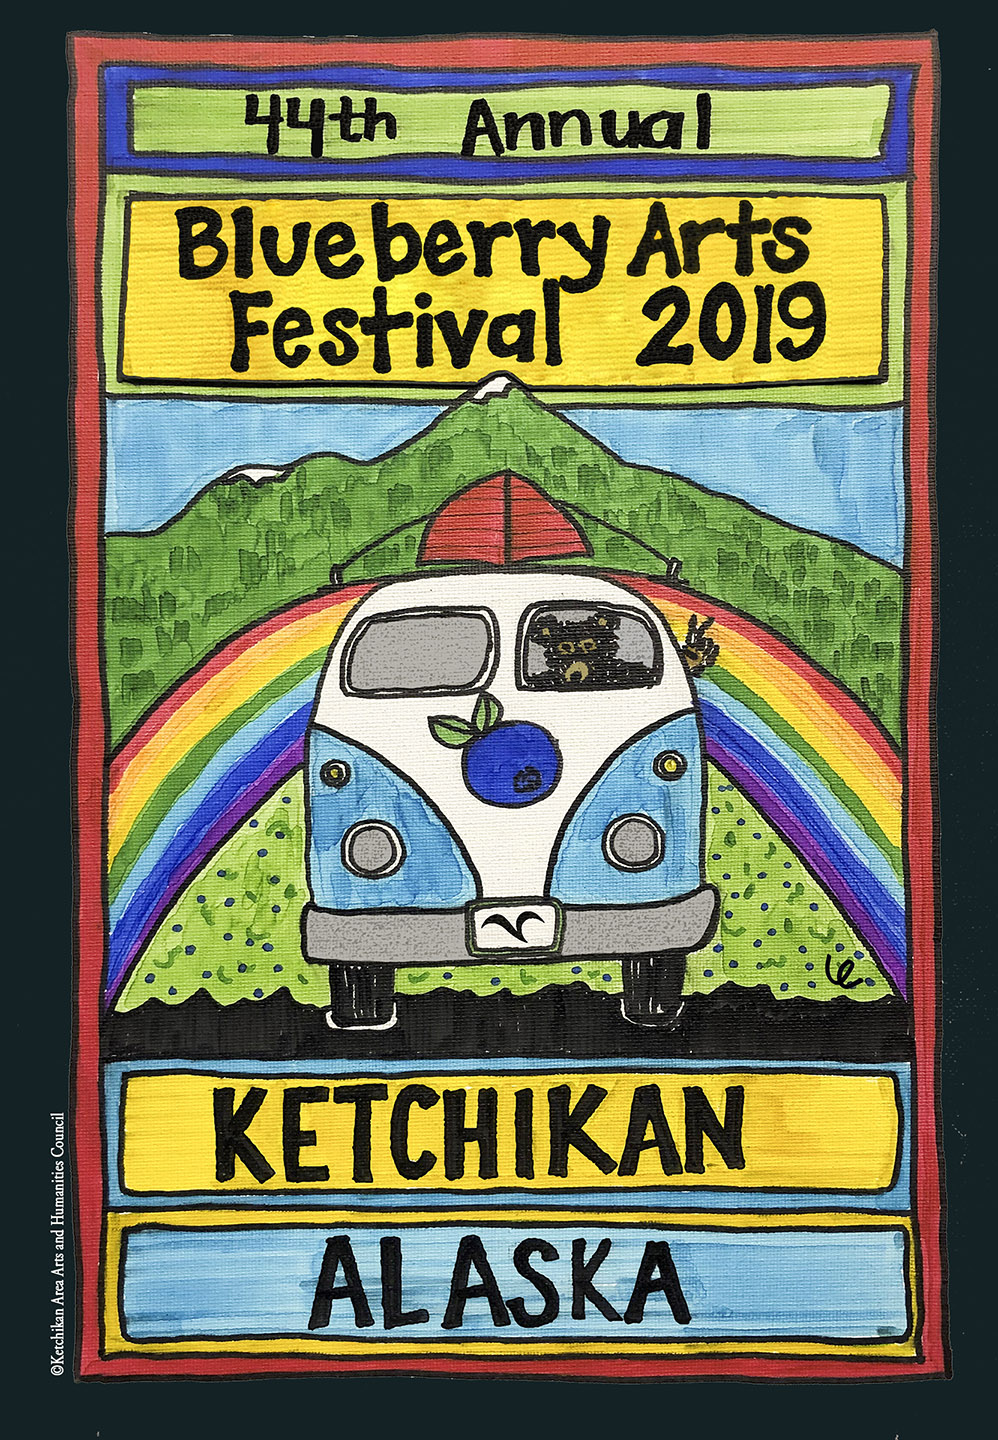 2019 Blueberry Arts Festival Stickers